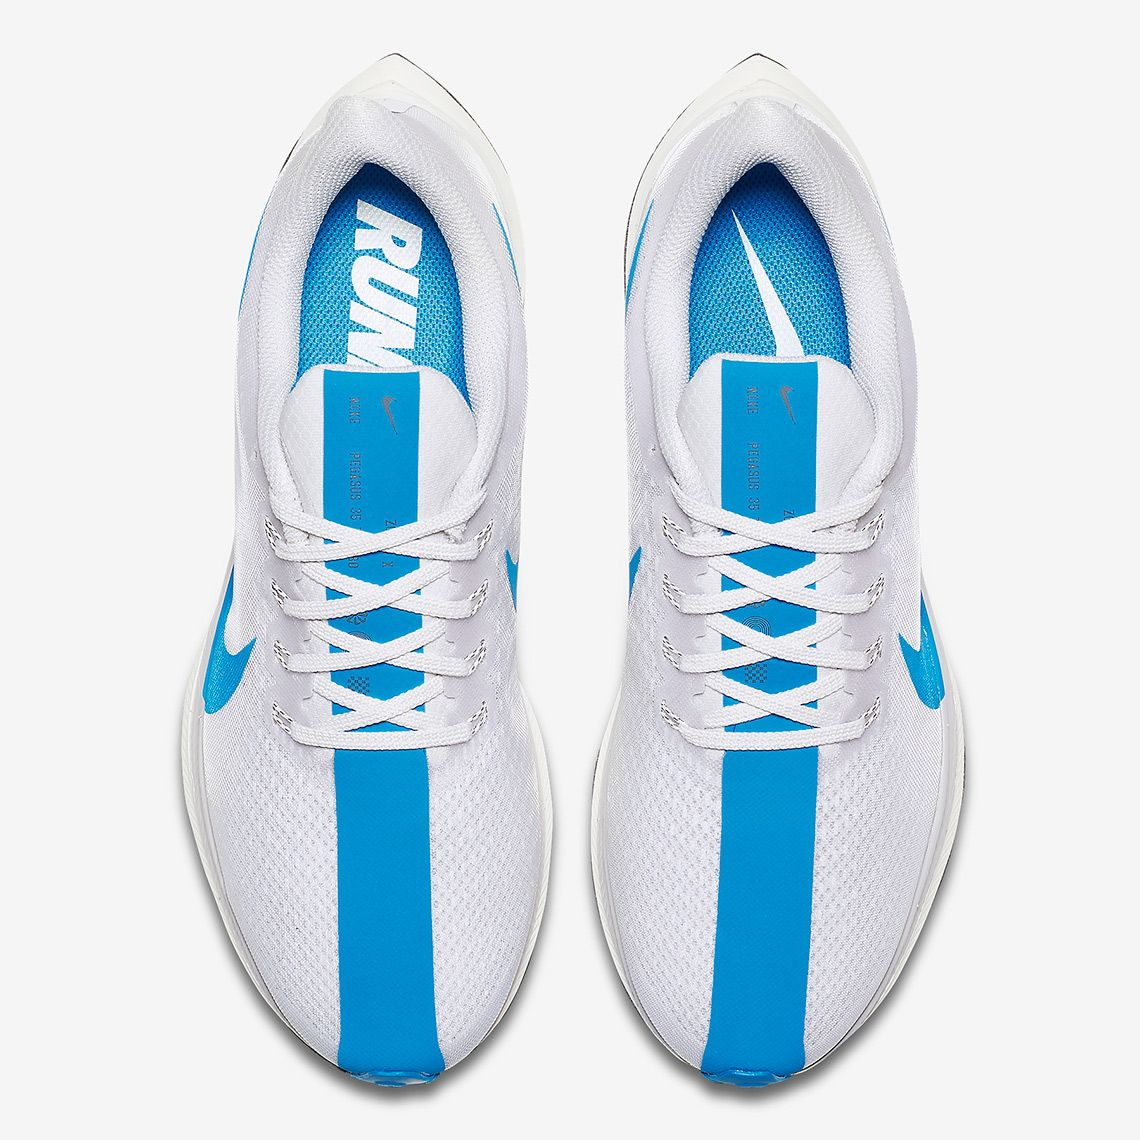 new product 3c362 3134f Sneaker News on Twitter: